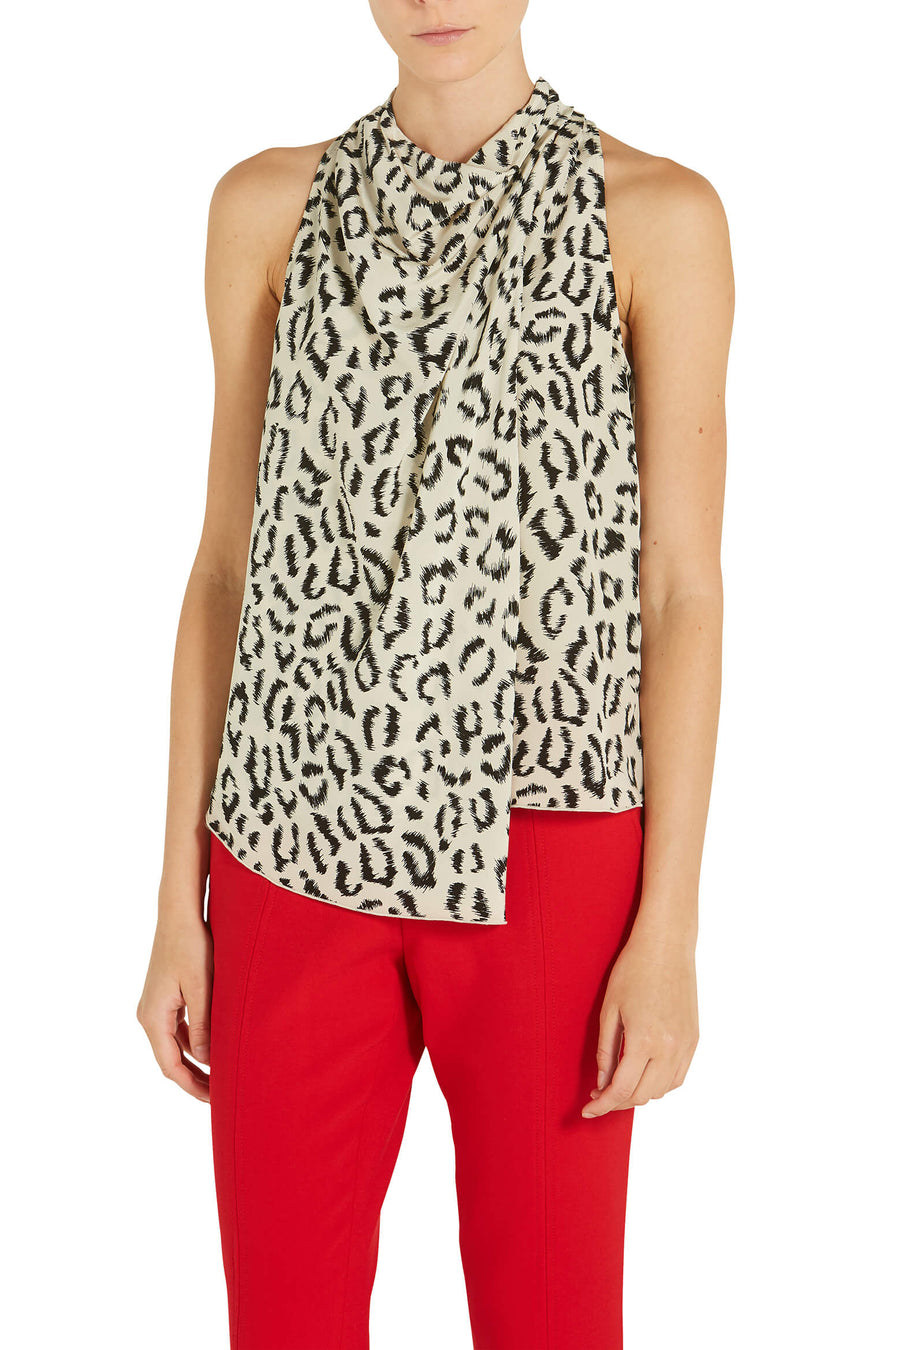 A.L.C. Ella Printed Top in Graphic Leopard from The New Trend